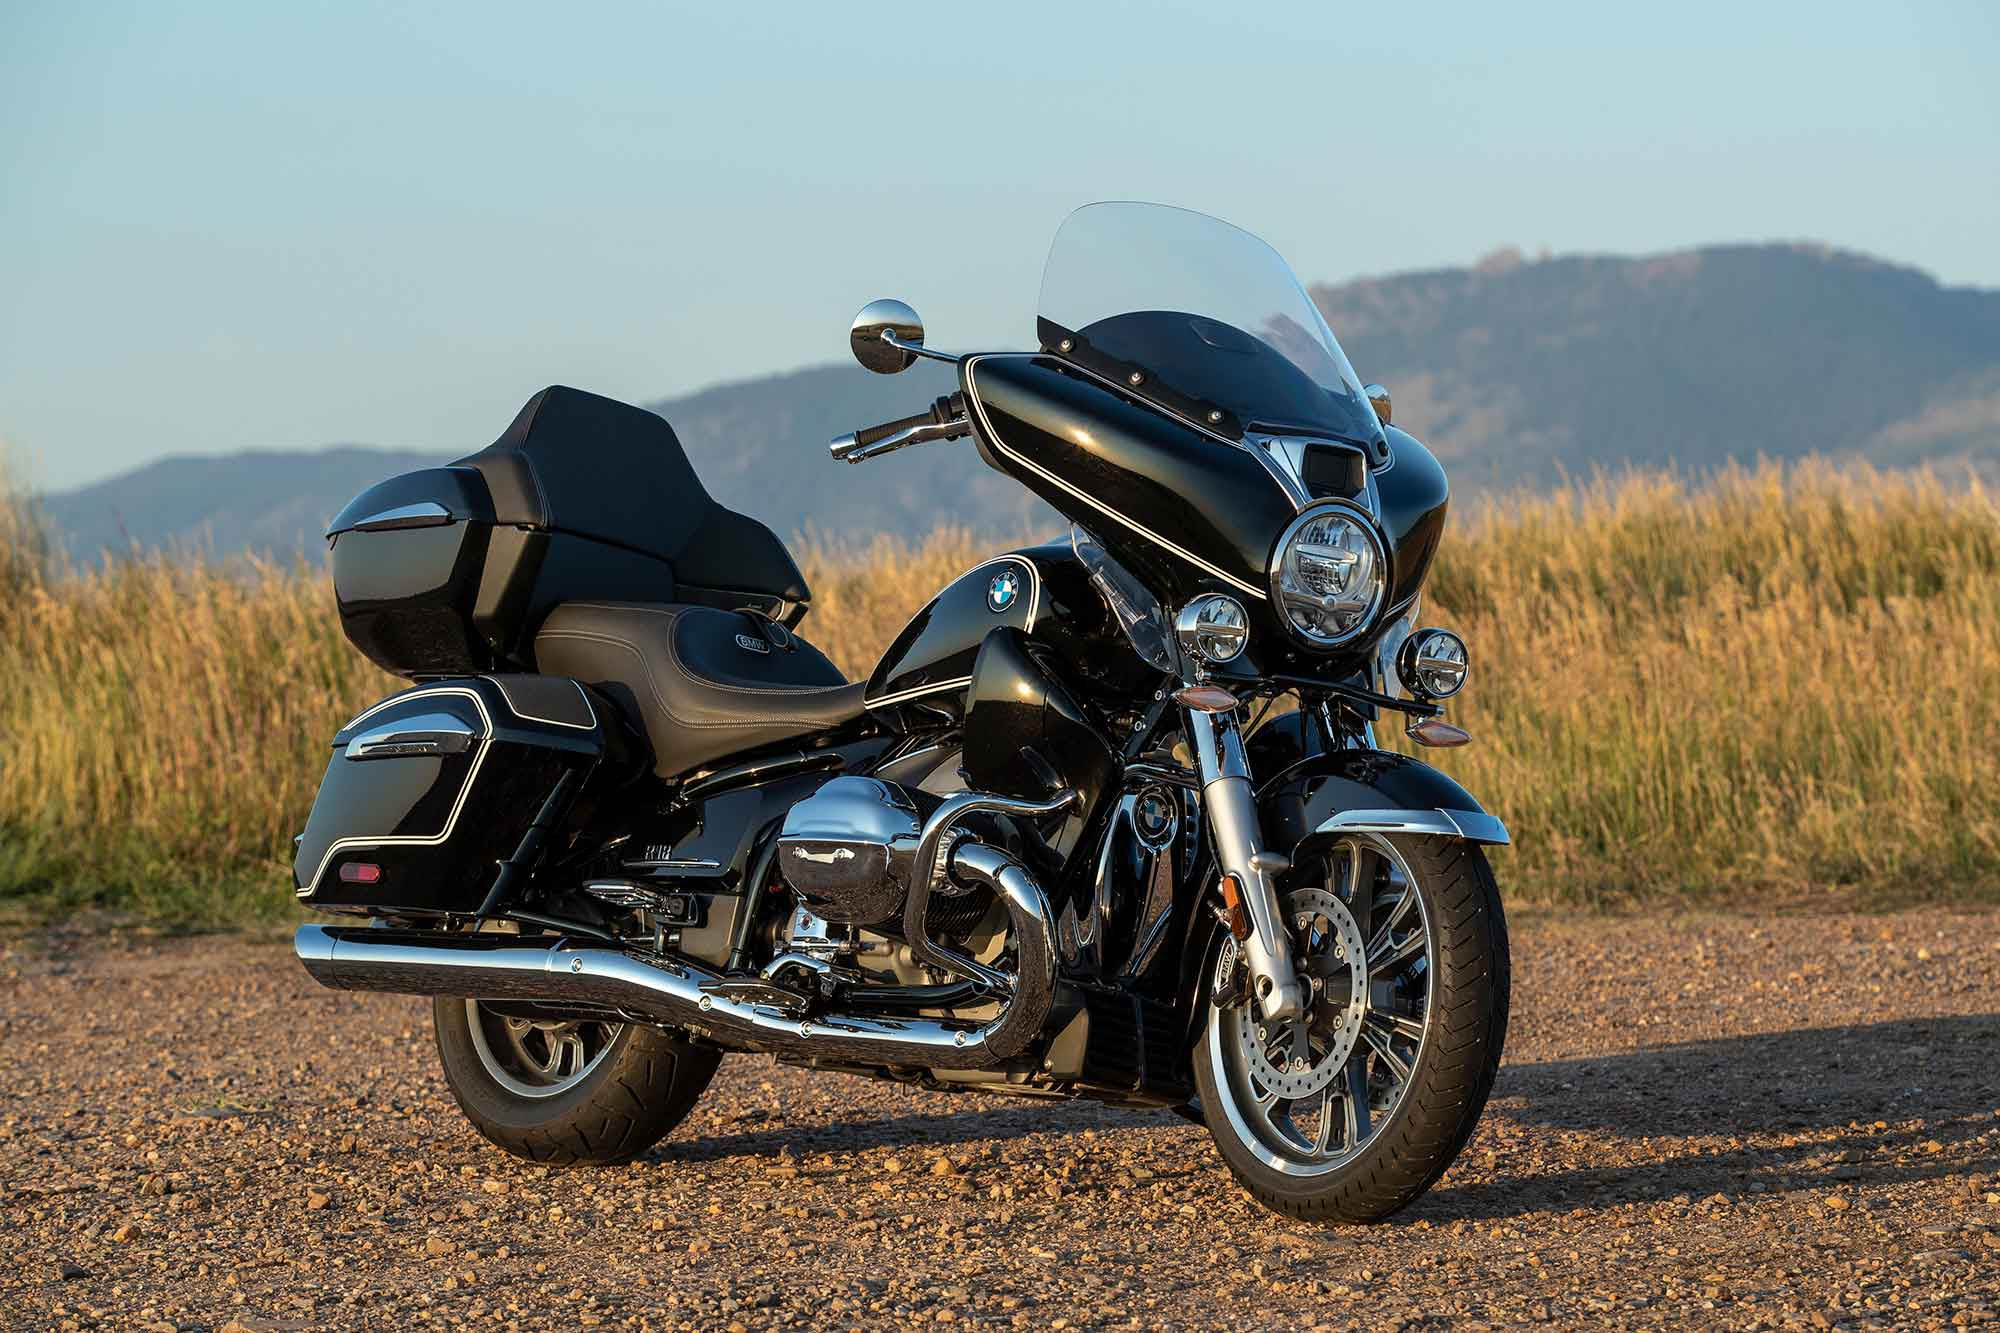 The R 18 Transcontinental has a starting MSRP of $24,995 but costs $31,965 as tested.